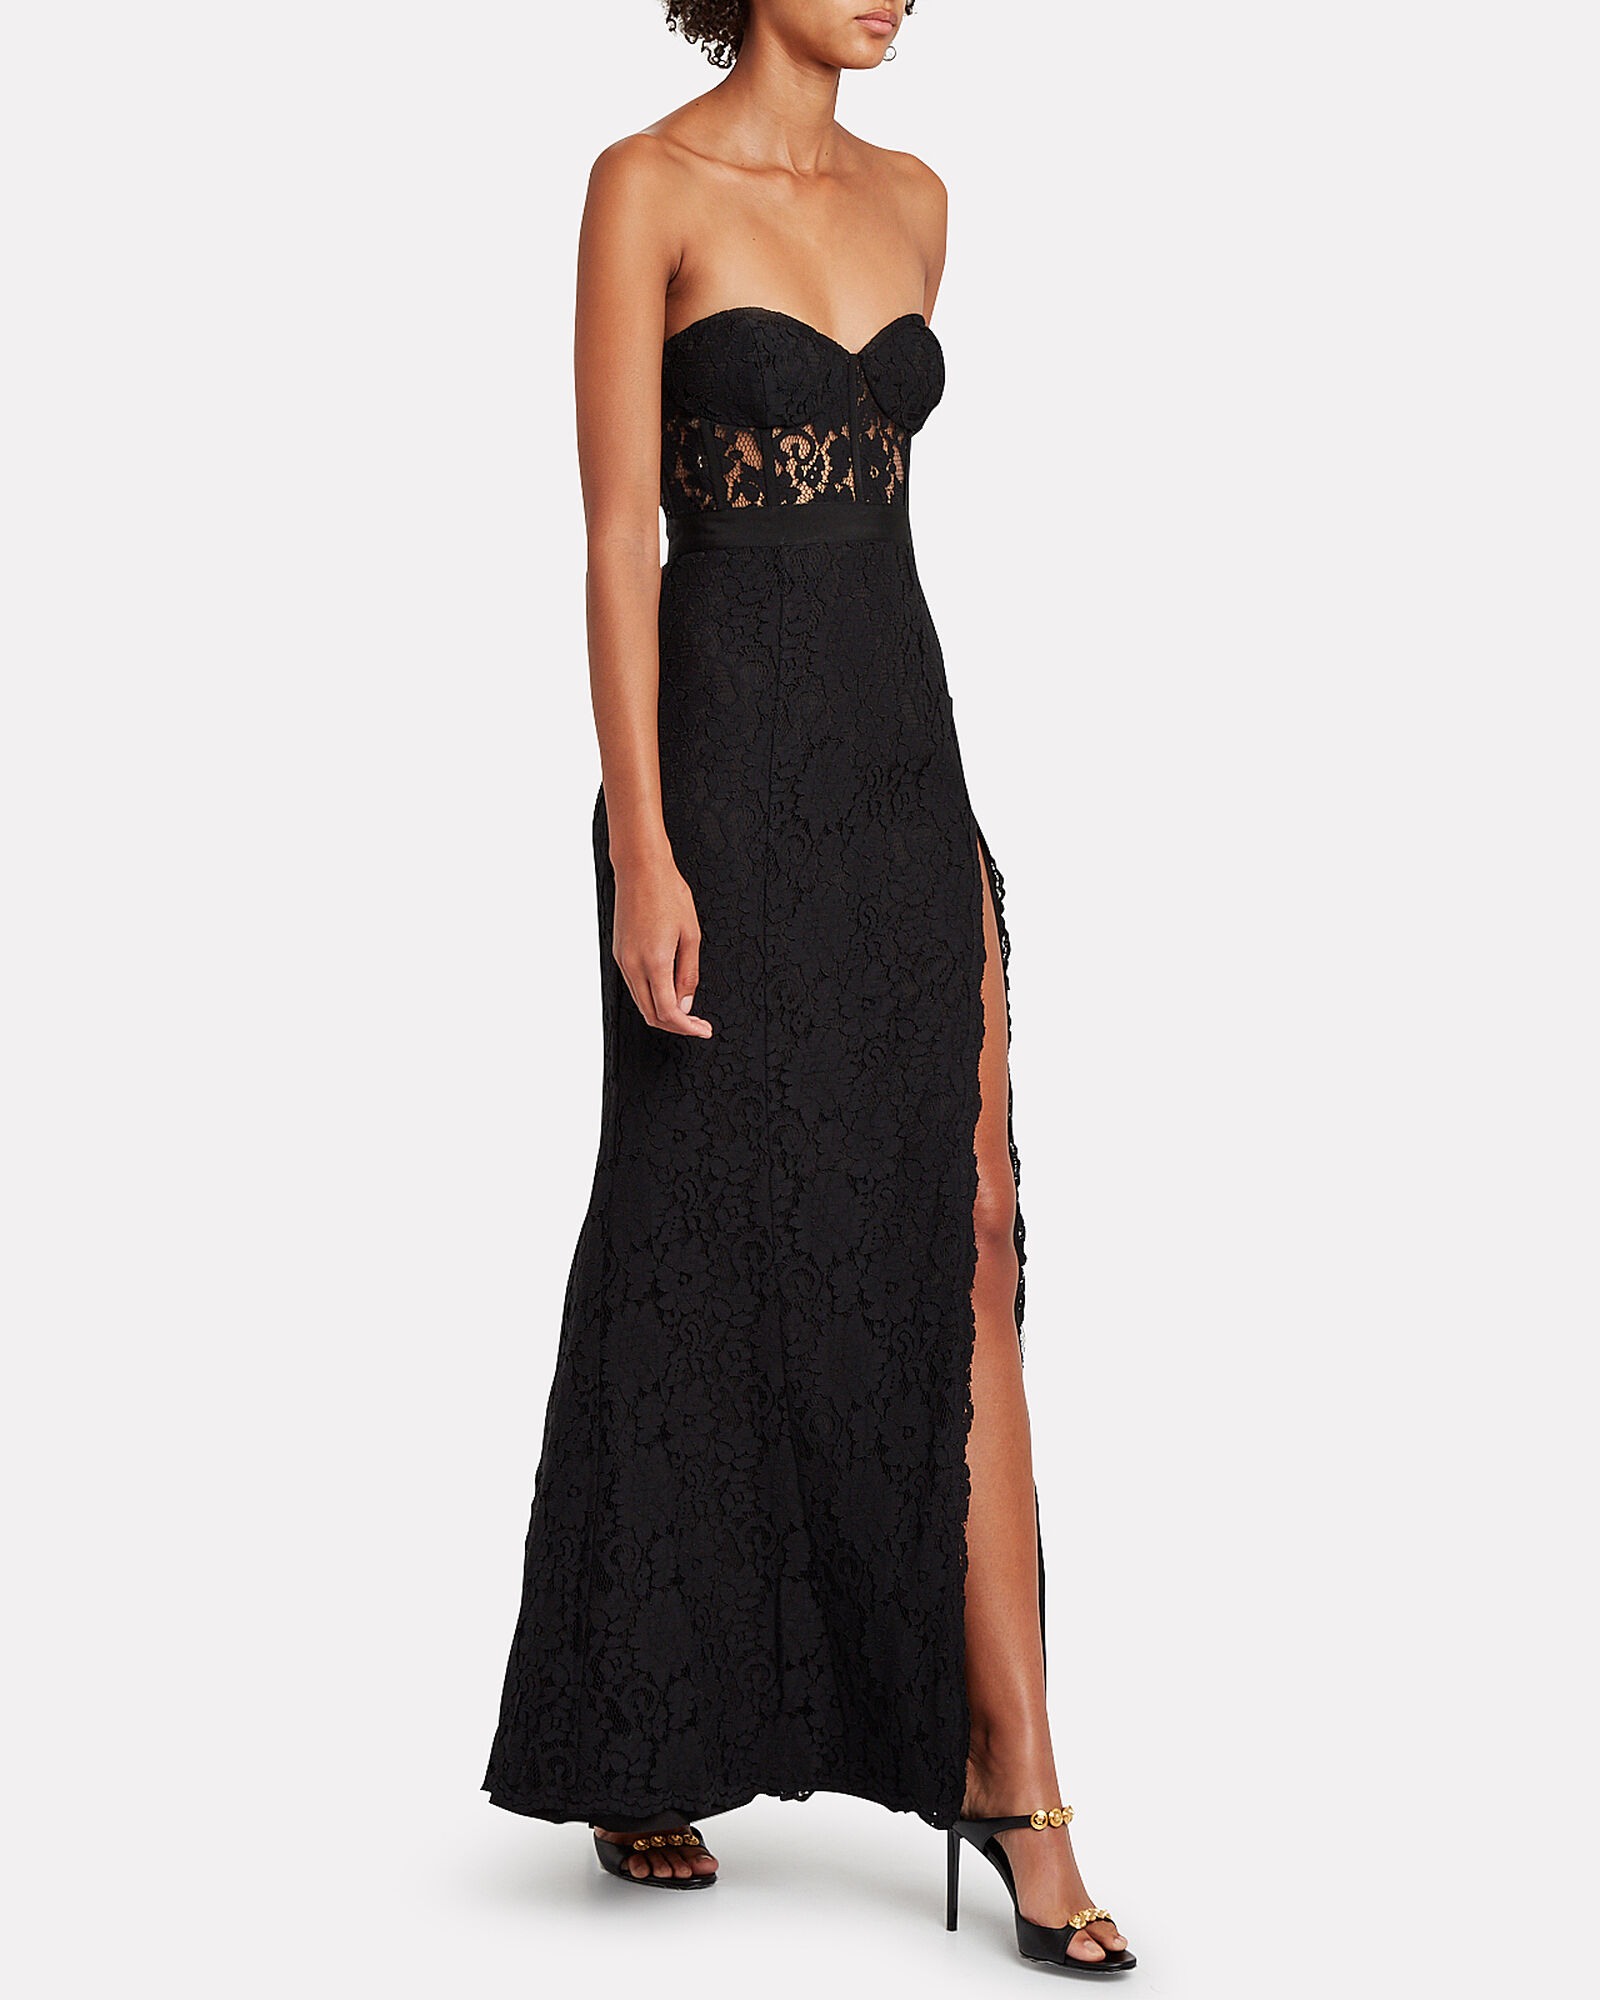 Mariposa Strapless Lace Gown, BLACK, hi-res